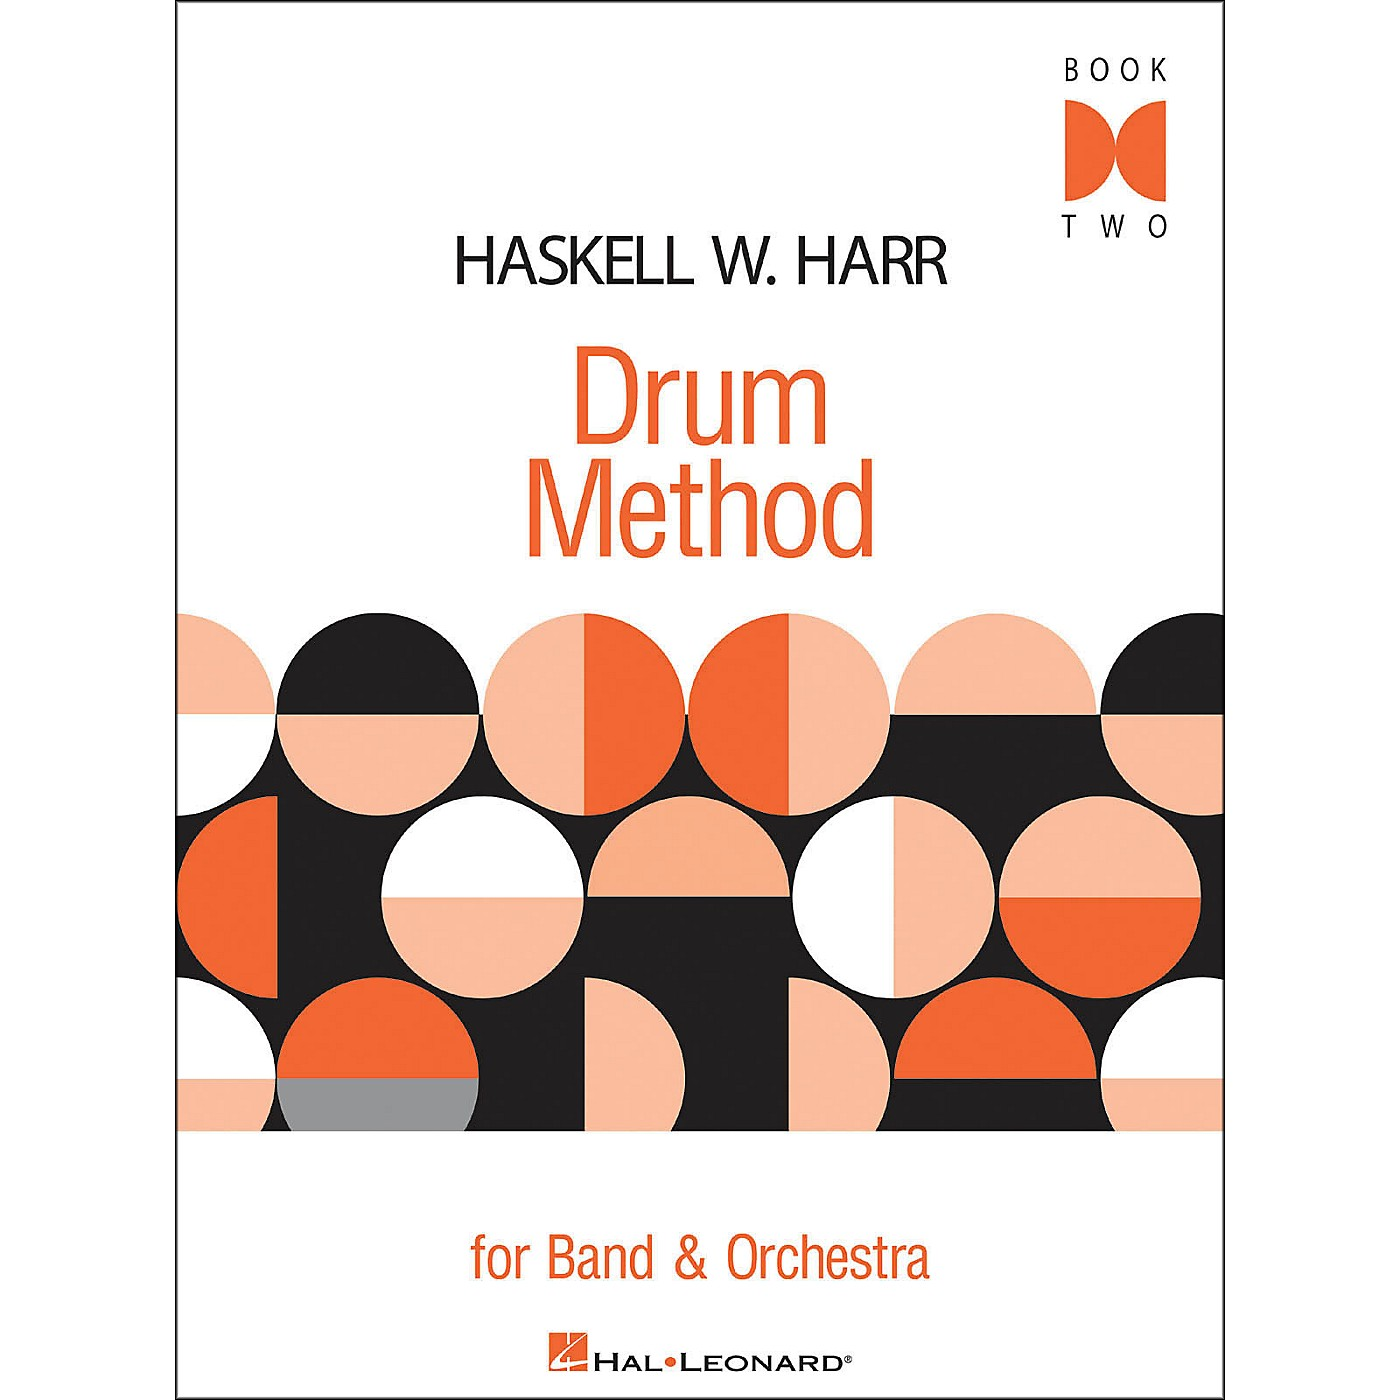 Hal Leonard Haskell W. Harr Drum Method Book Two thumbnail